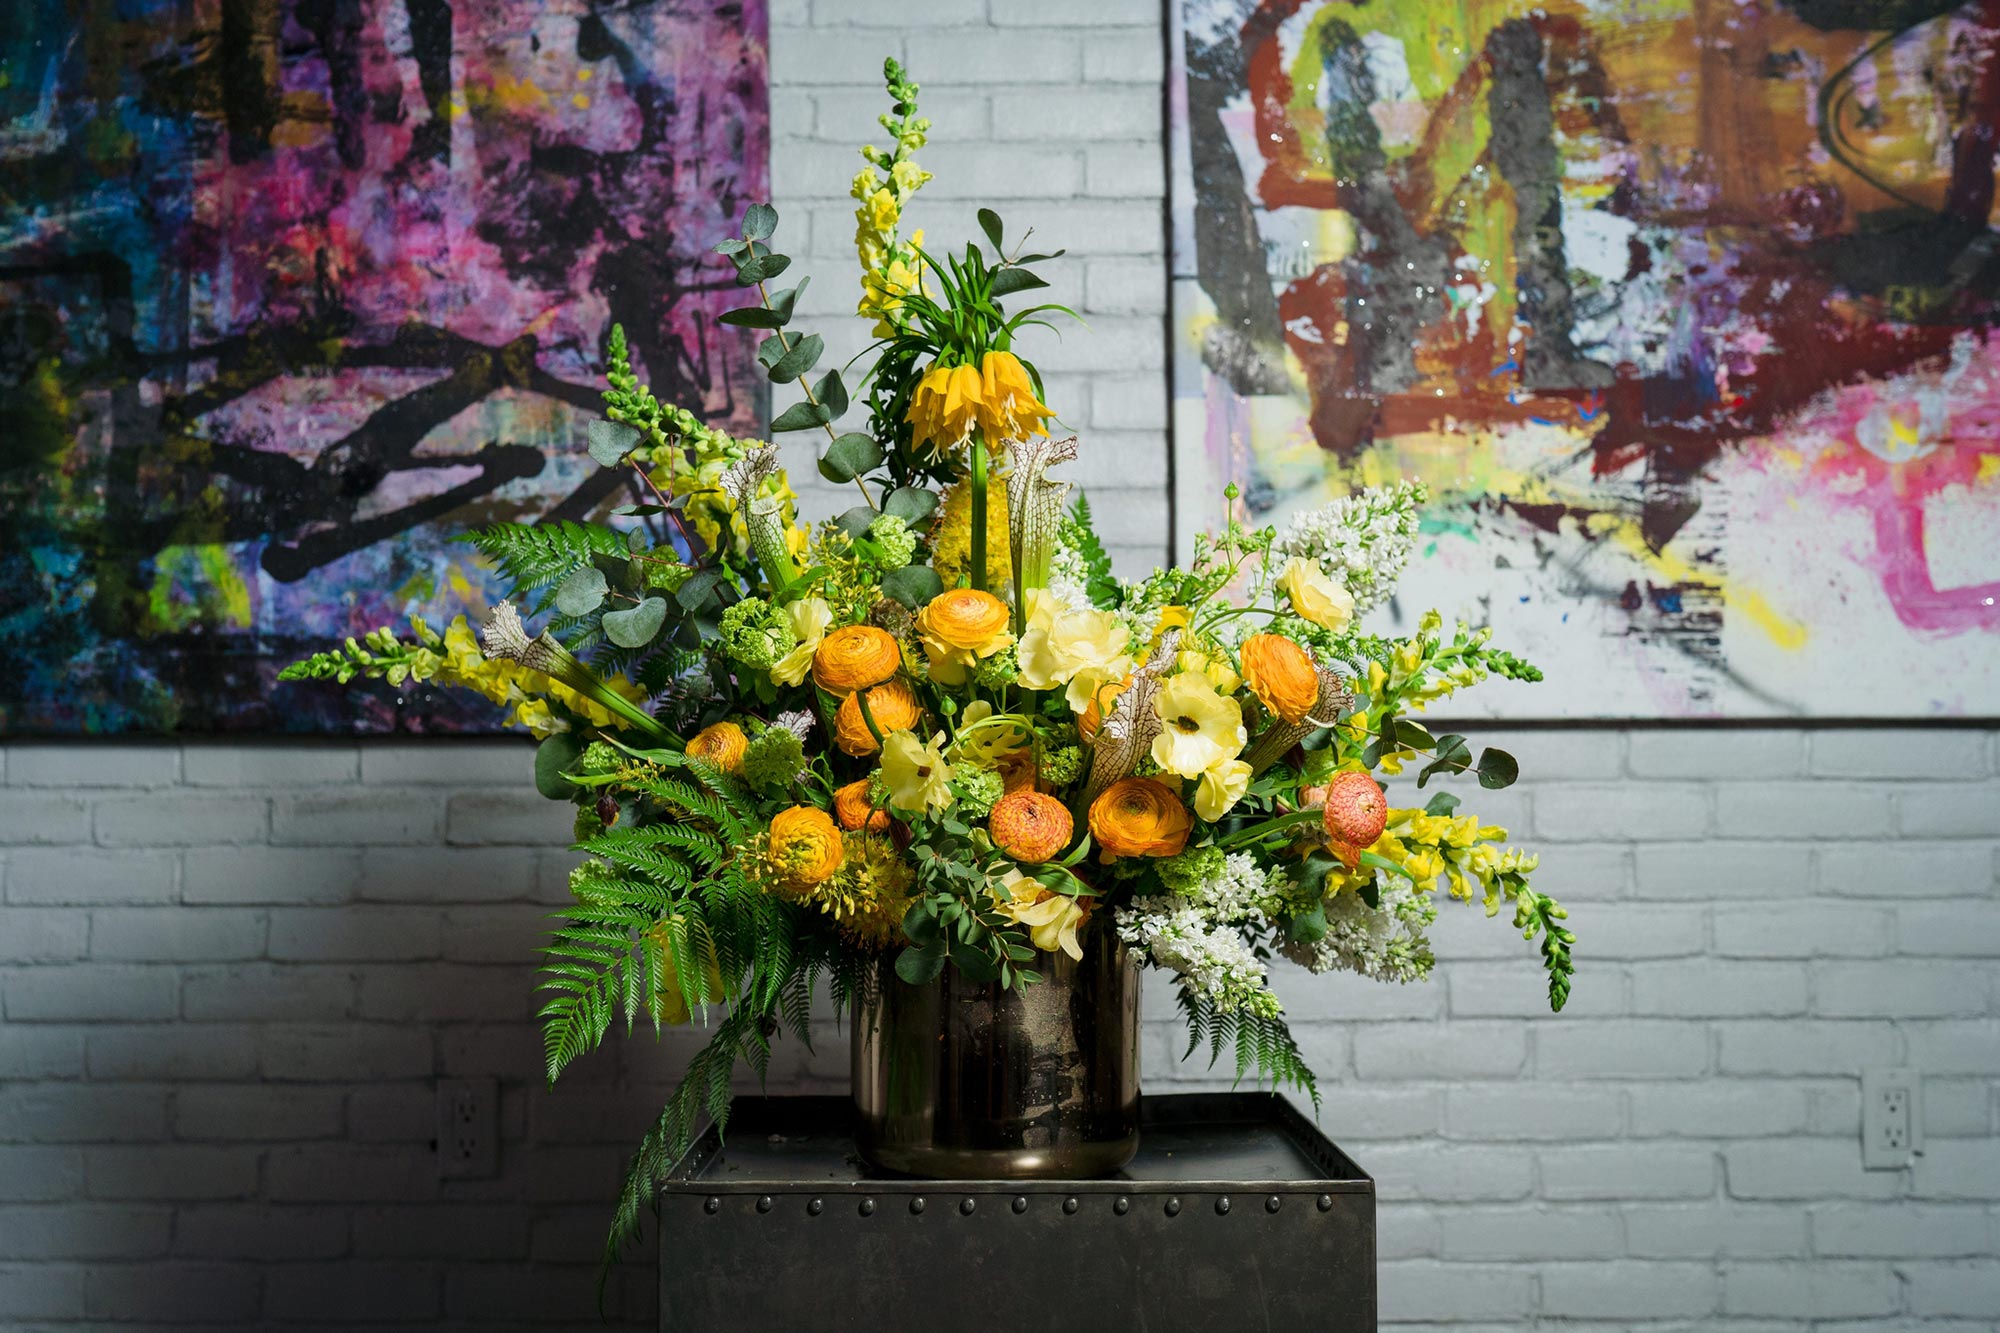 Bright Neon Wedding Inspiration at The Bowery Hotel NYC showing neon yellow floral centerpiece JC Lemon Photography